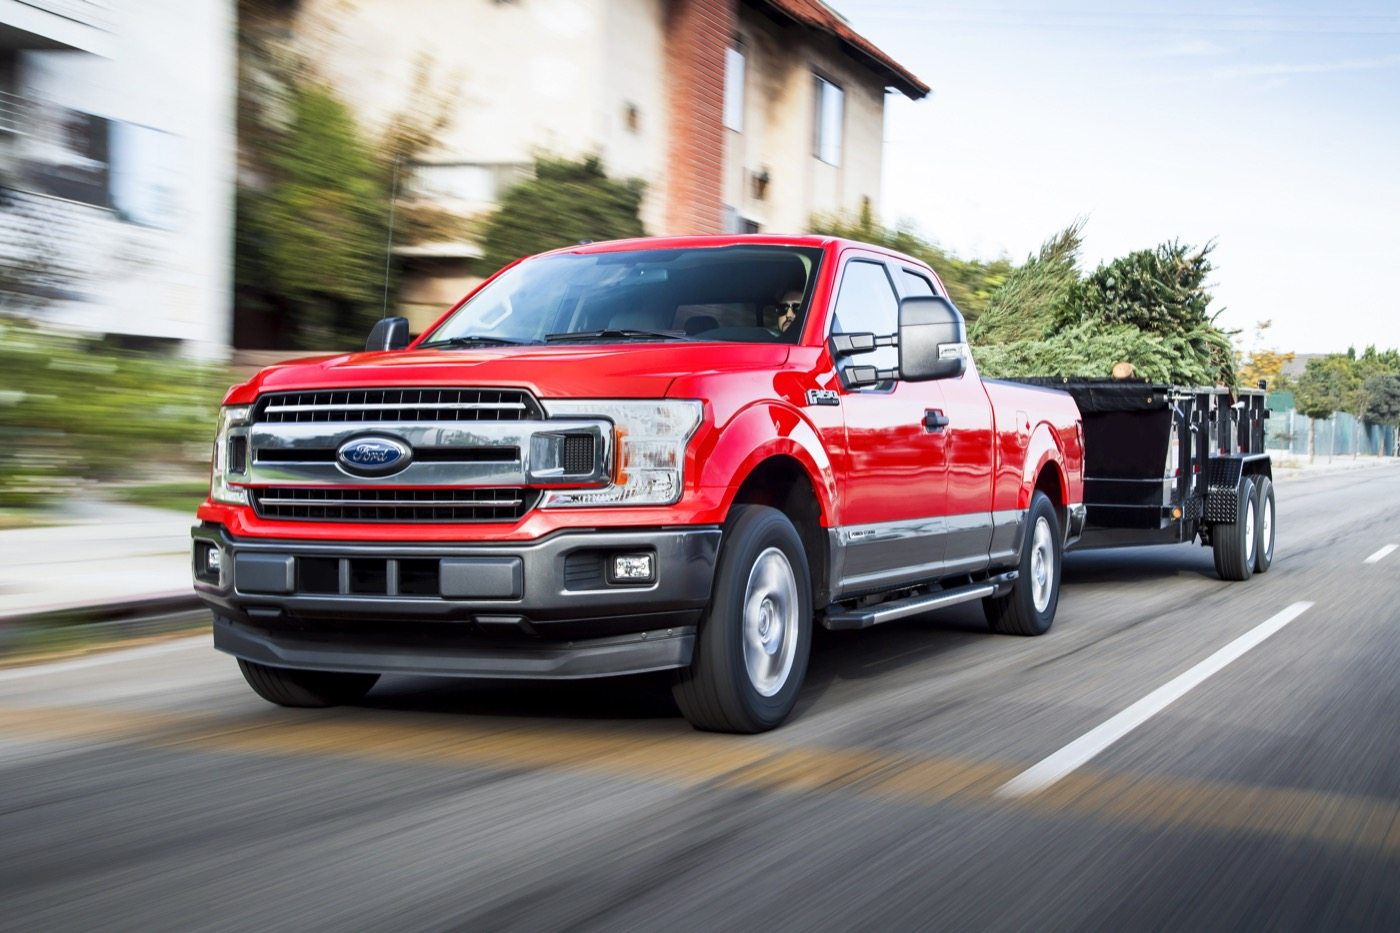 2018 F-150 Power Stroke Diesel - Image: Ford